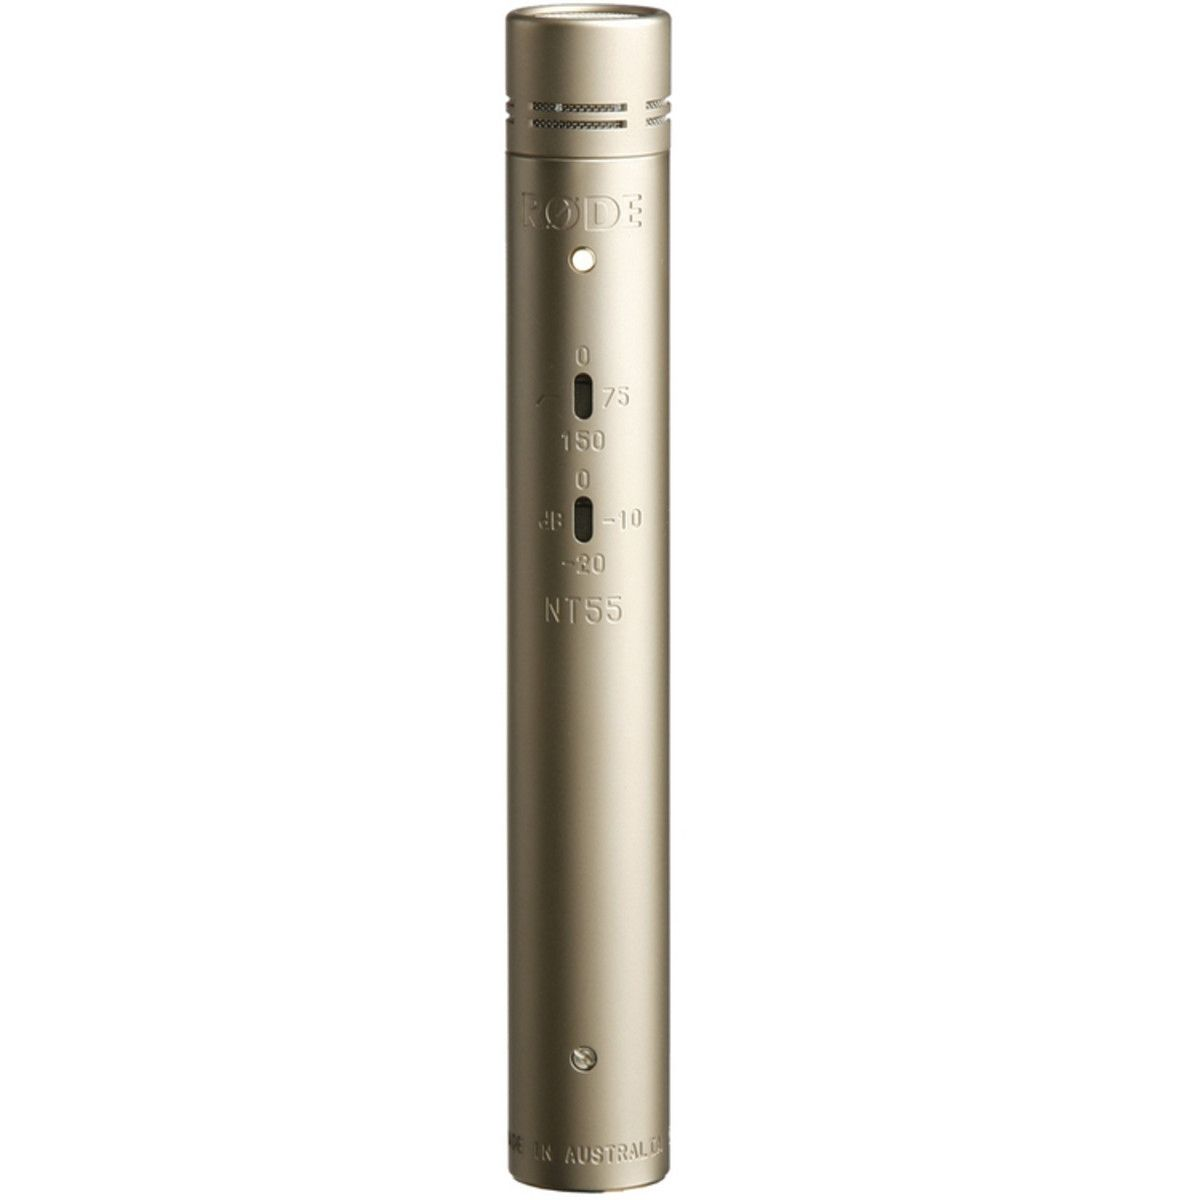 Rode NT55 Small Diaphragm Condenser Microphone